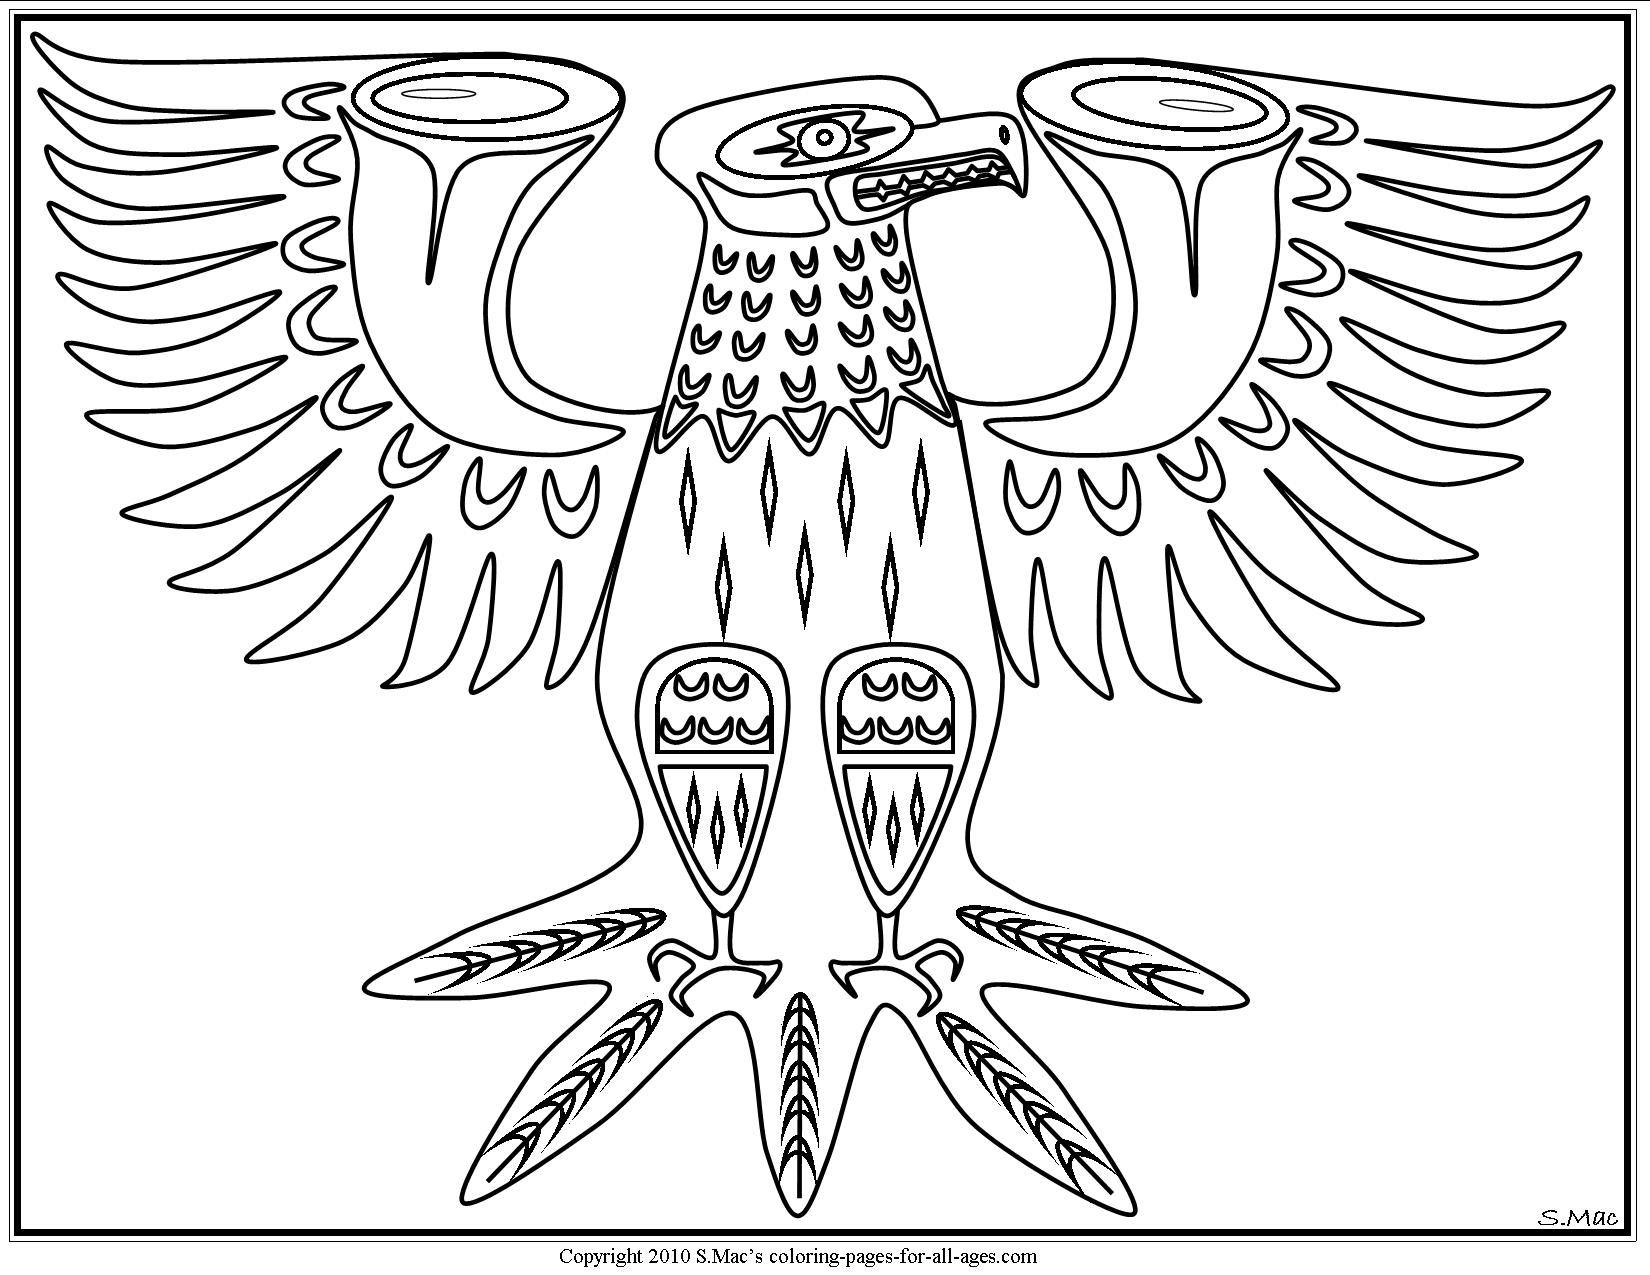 Pacific Northwest Native American Art Coloring Pages | S.Mac\'s Place ...